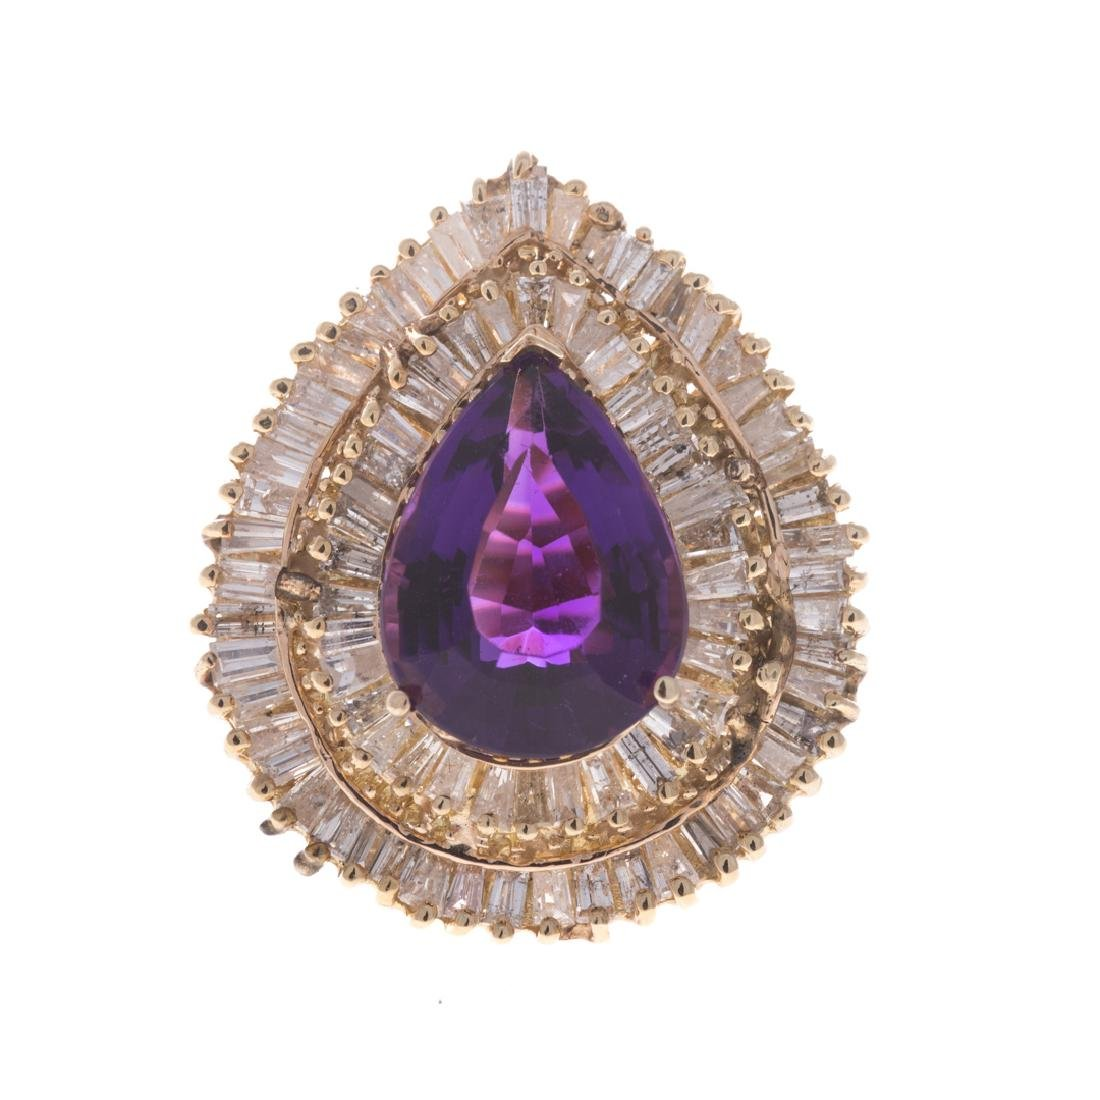 A Lady's 14K Amethyst and Diamond Cocktail Ring